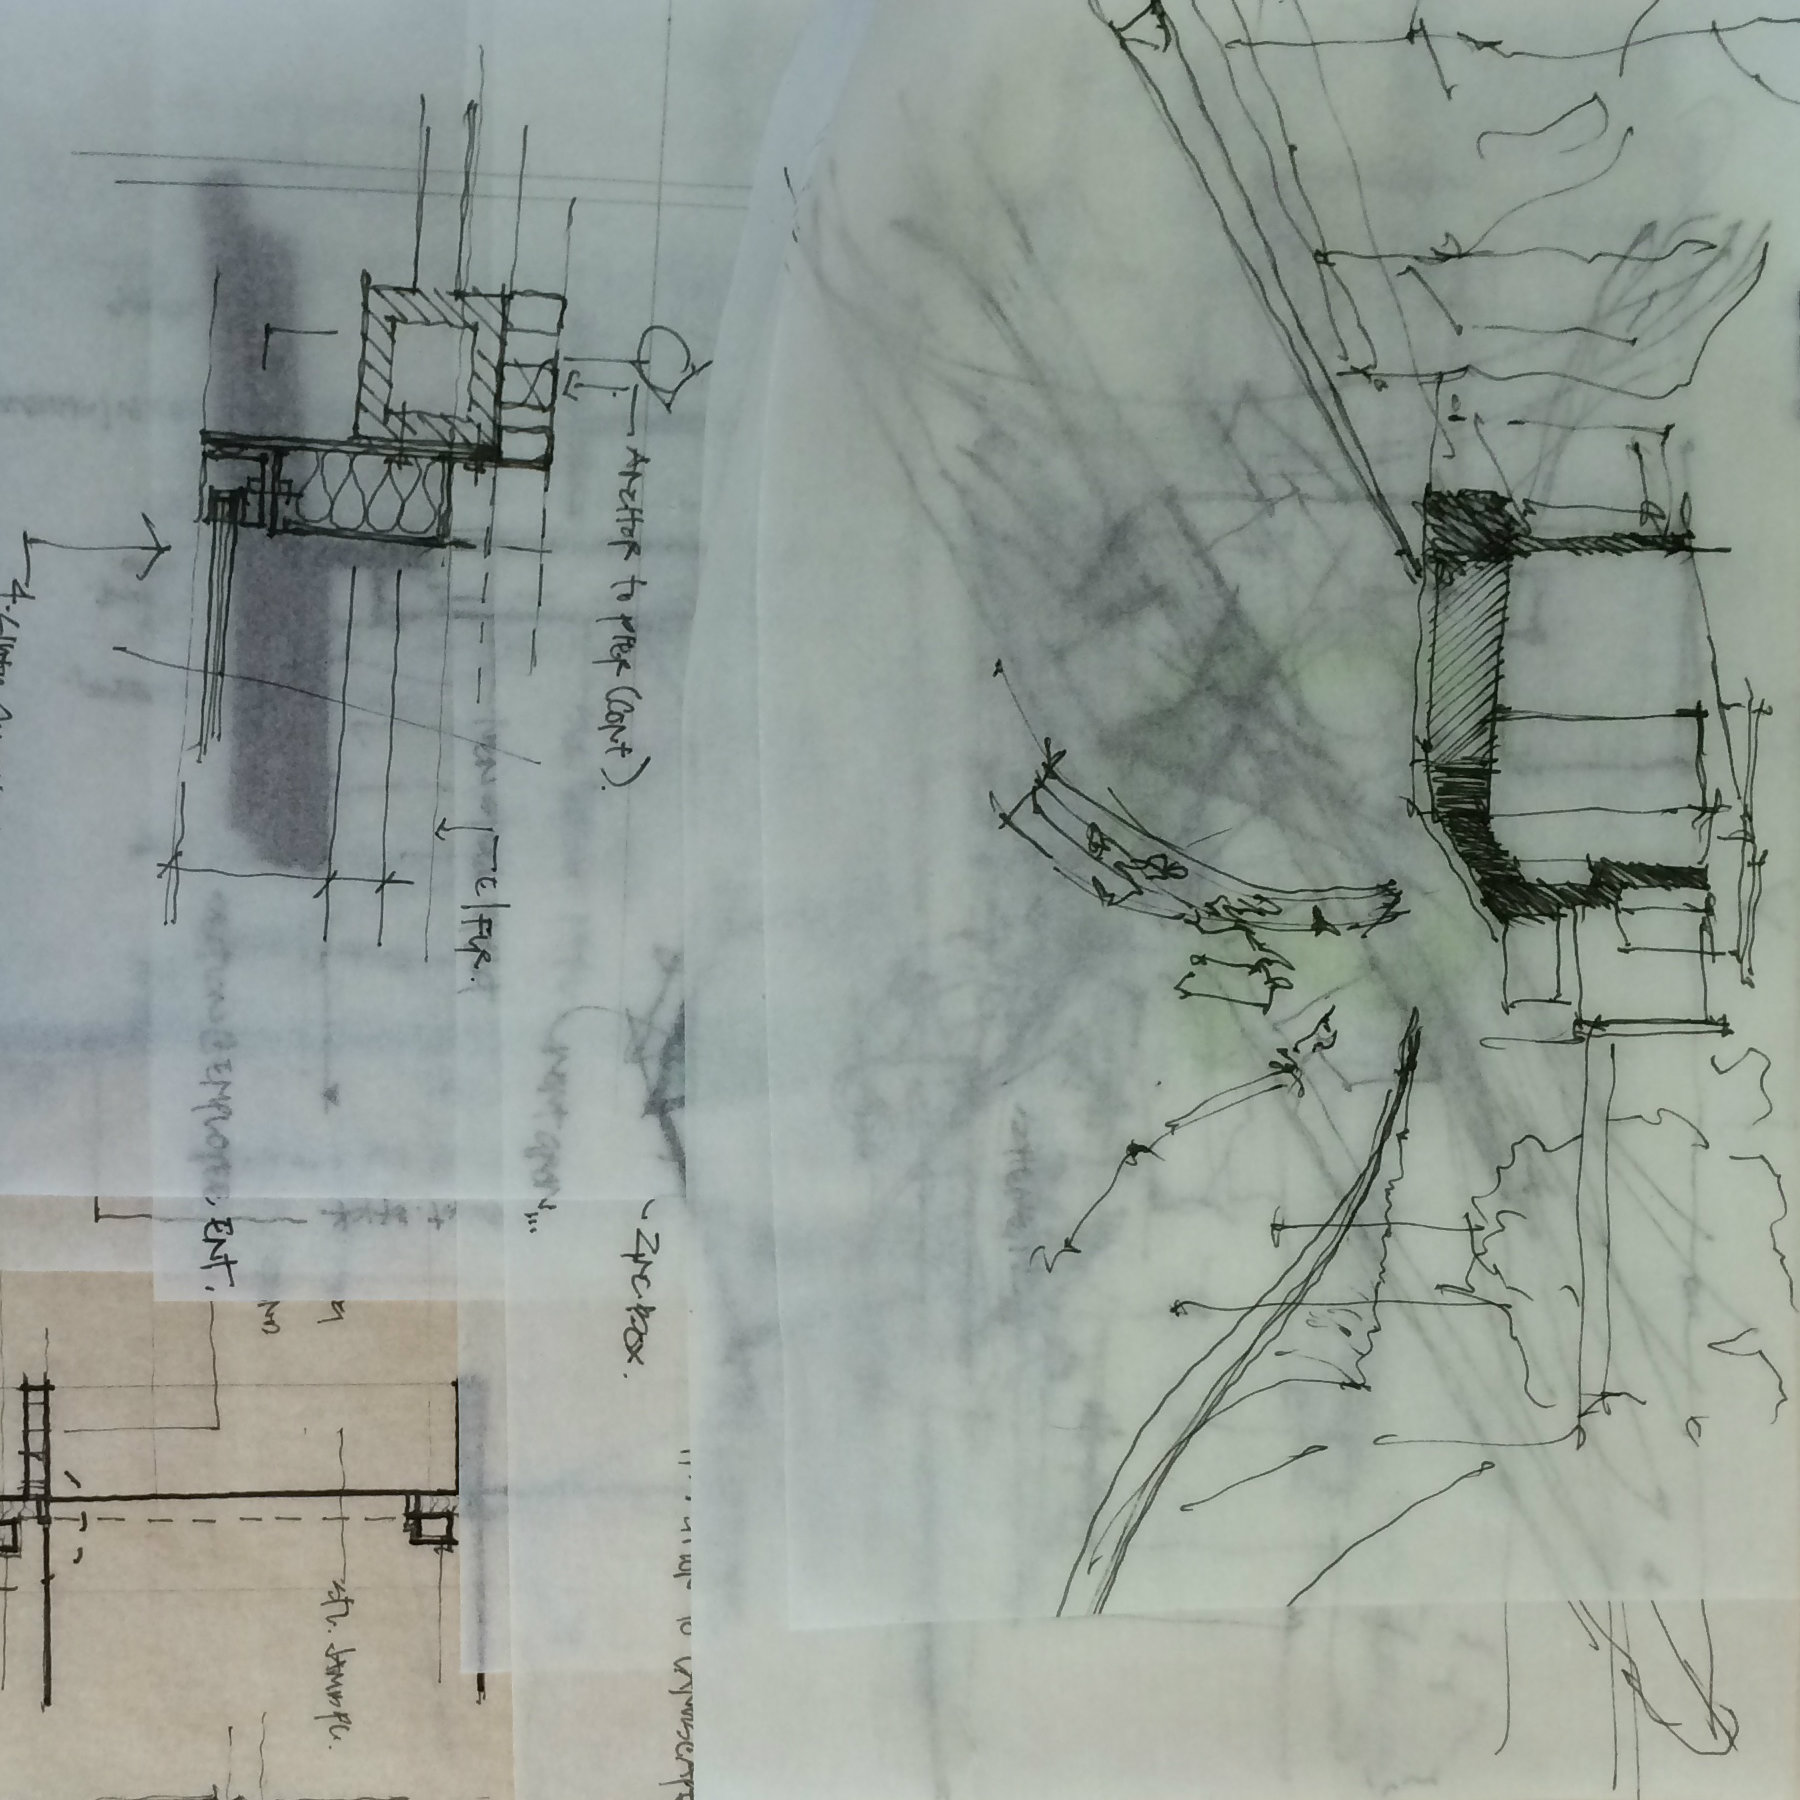 architectural drawings on trace paper